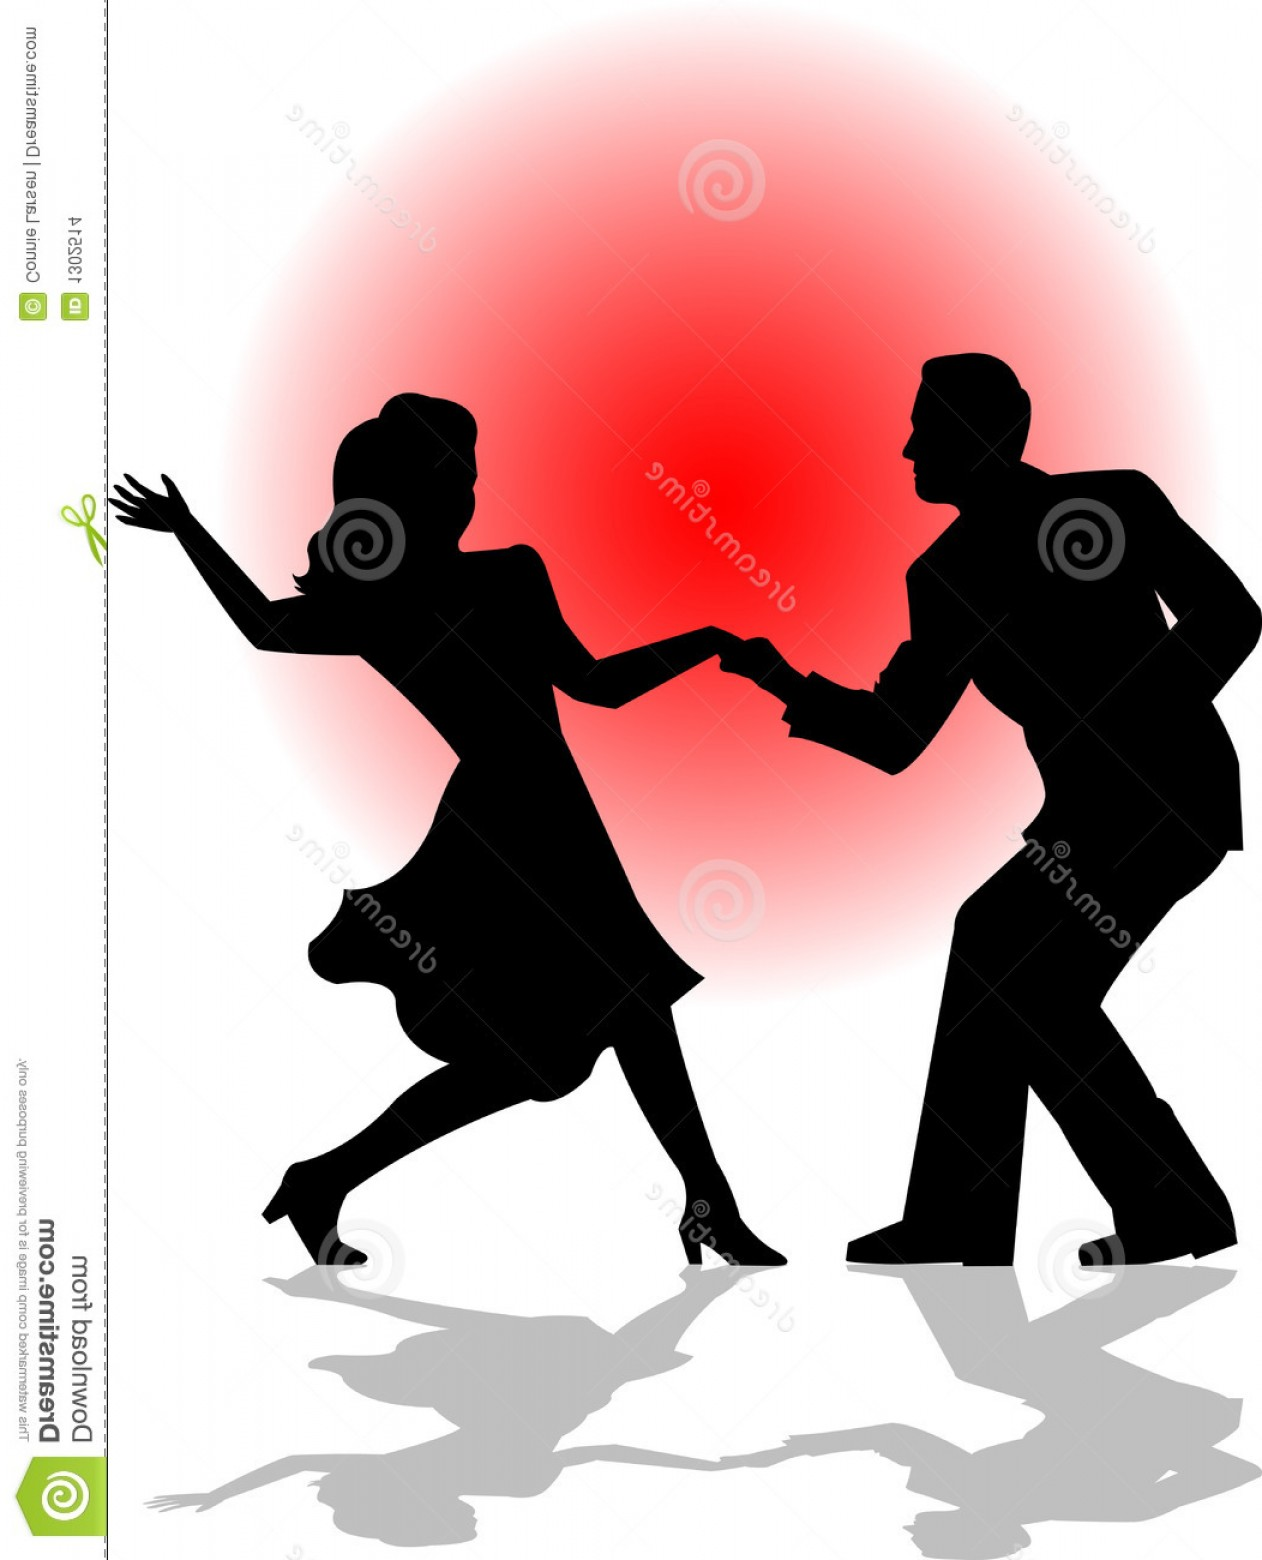 Vector Swing Dancers: Stock Images Swing Dance Couple Eps Image